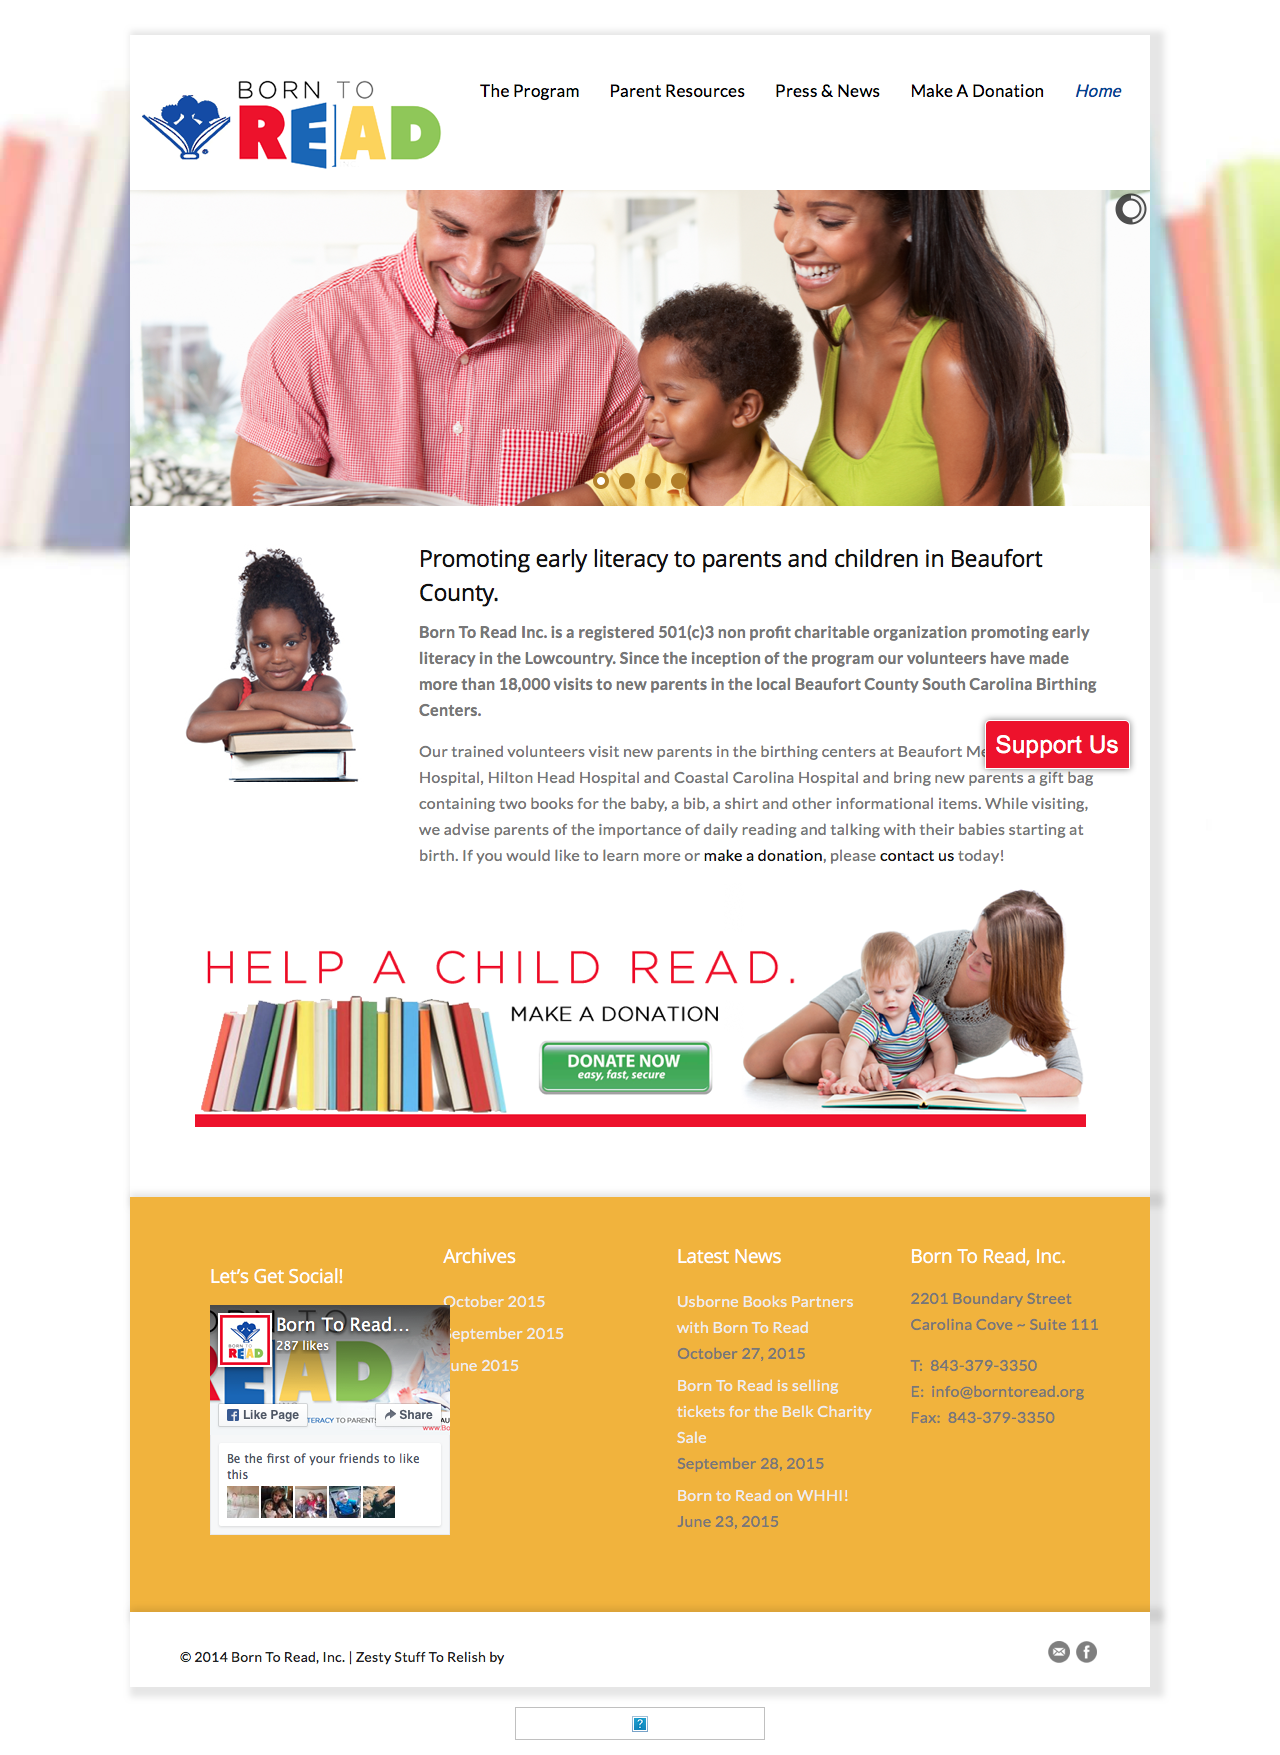 Beaufort Website Design |Born To Read : Promoting early literacy to parents and children in Beaufort County. | Born To Read Inc. is a registered 501(c)3 non profit charitable organization promoting early literacy.